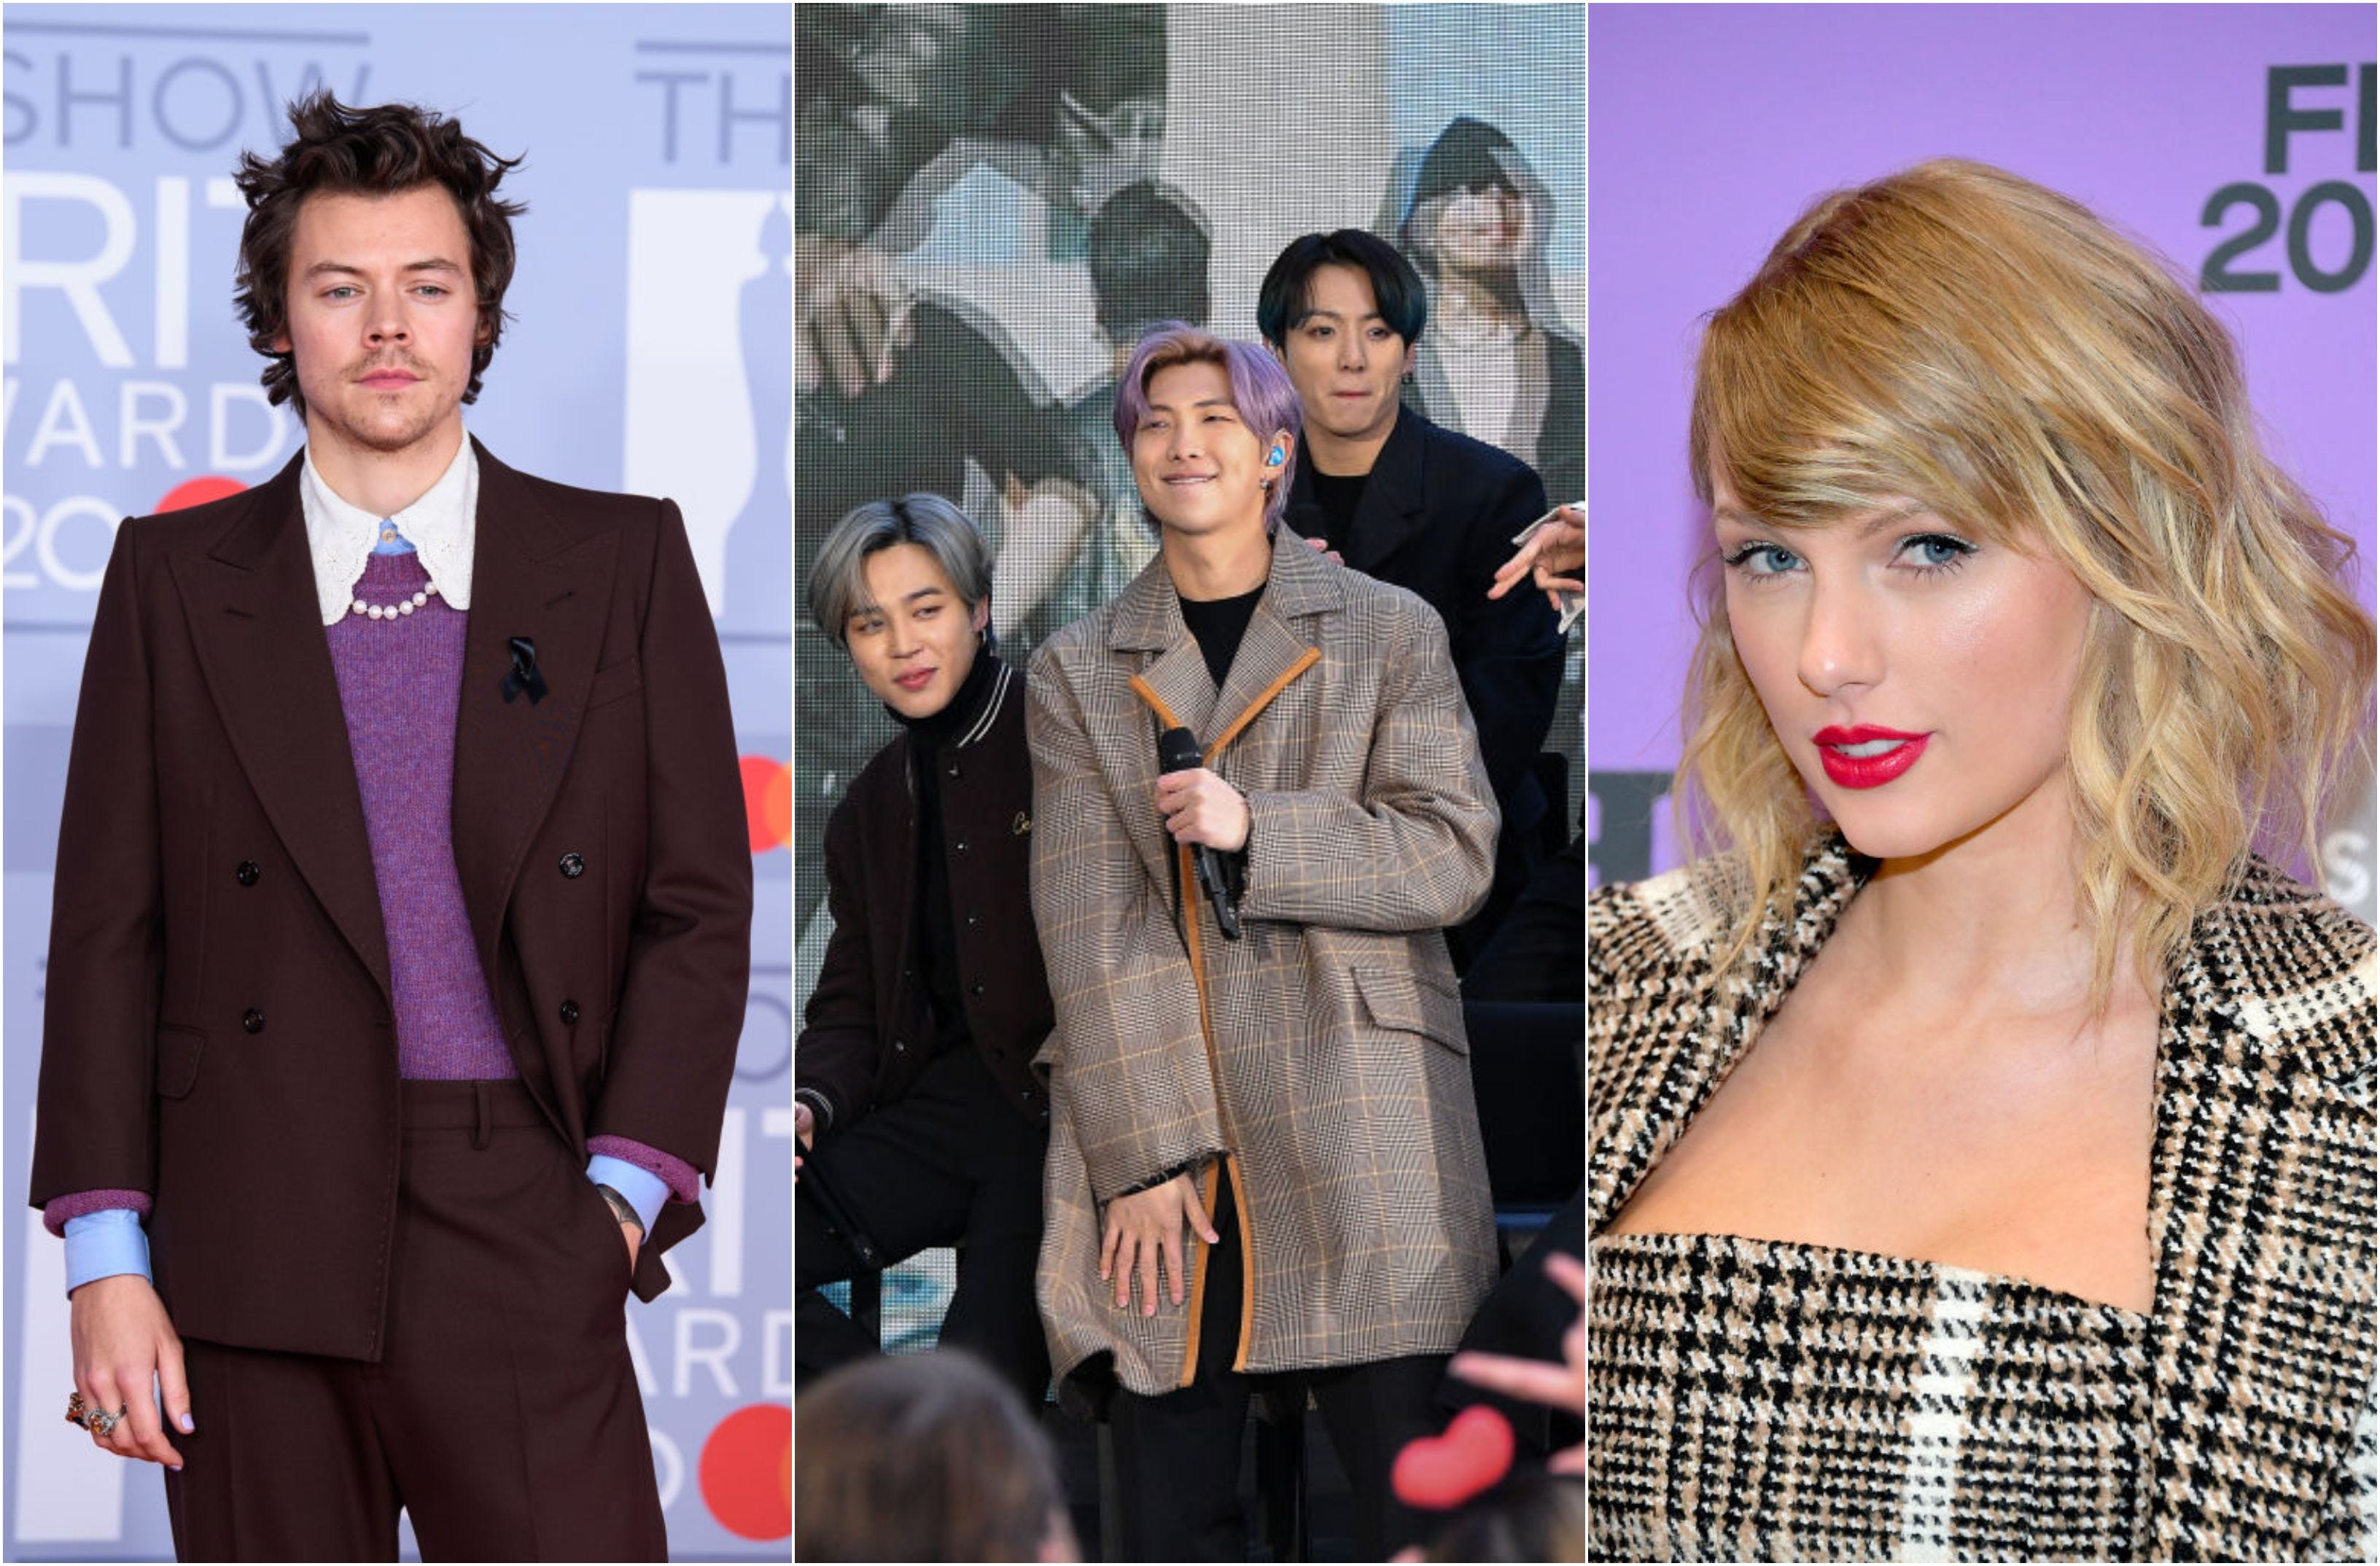 Taylor Swift, BTS, and more performing at 2021 GRAMMY Awards